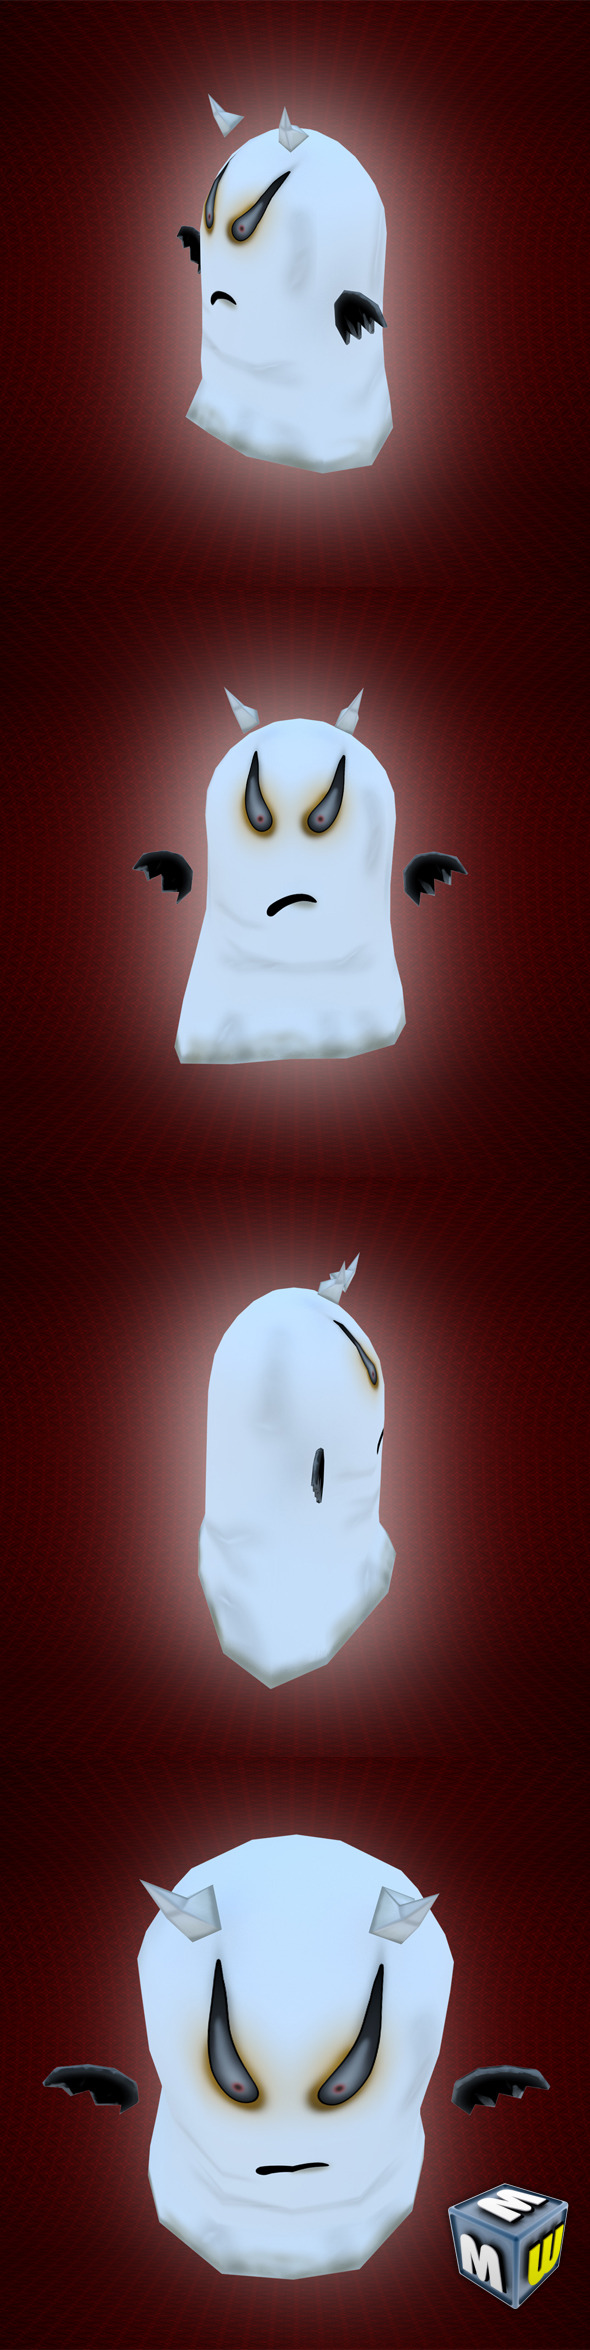 3DOcean Ghost Low Poly Character MAX 2011 5830572